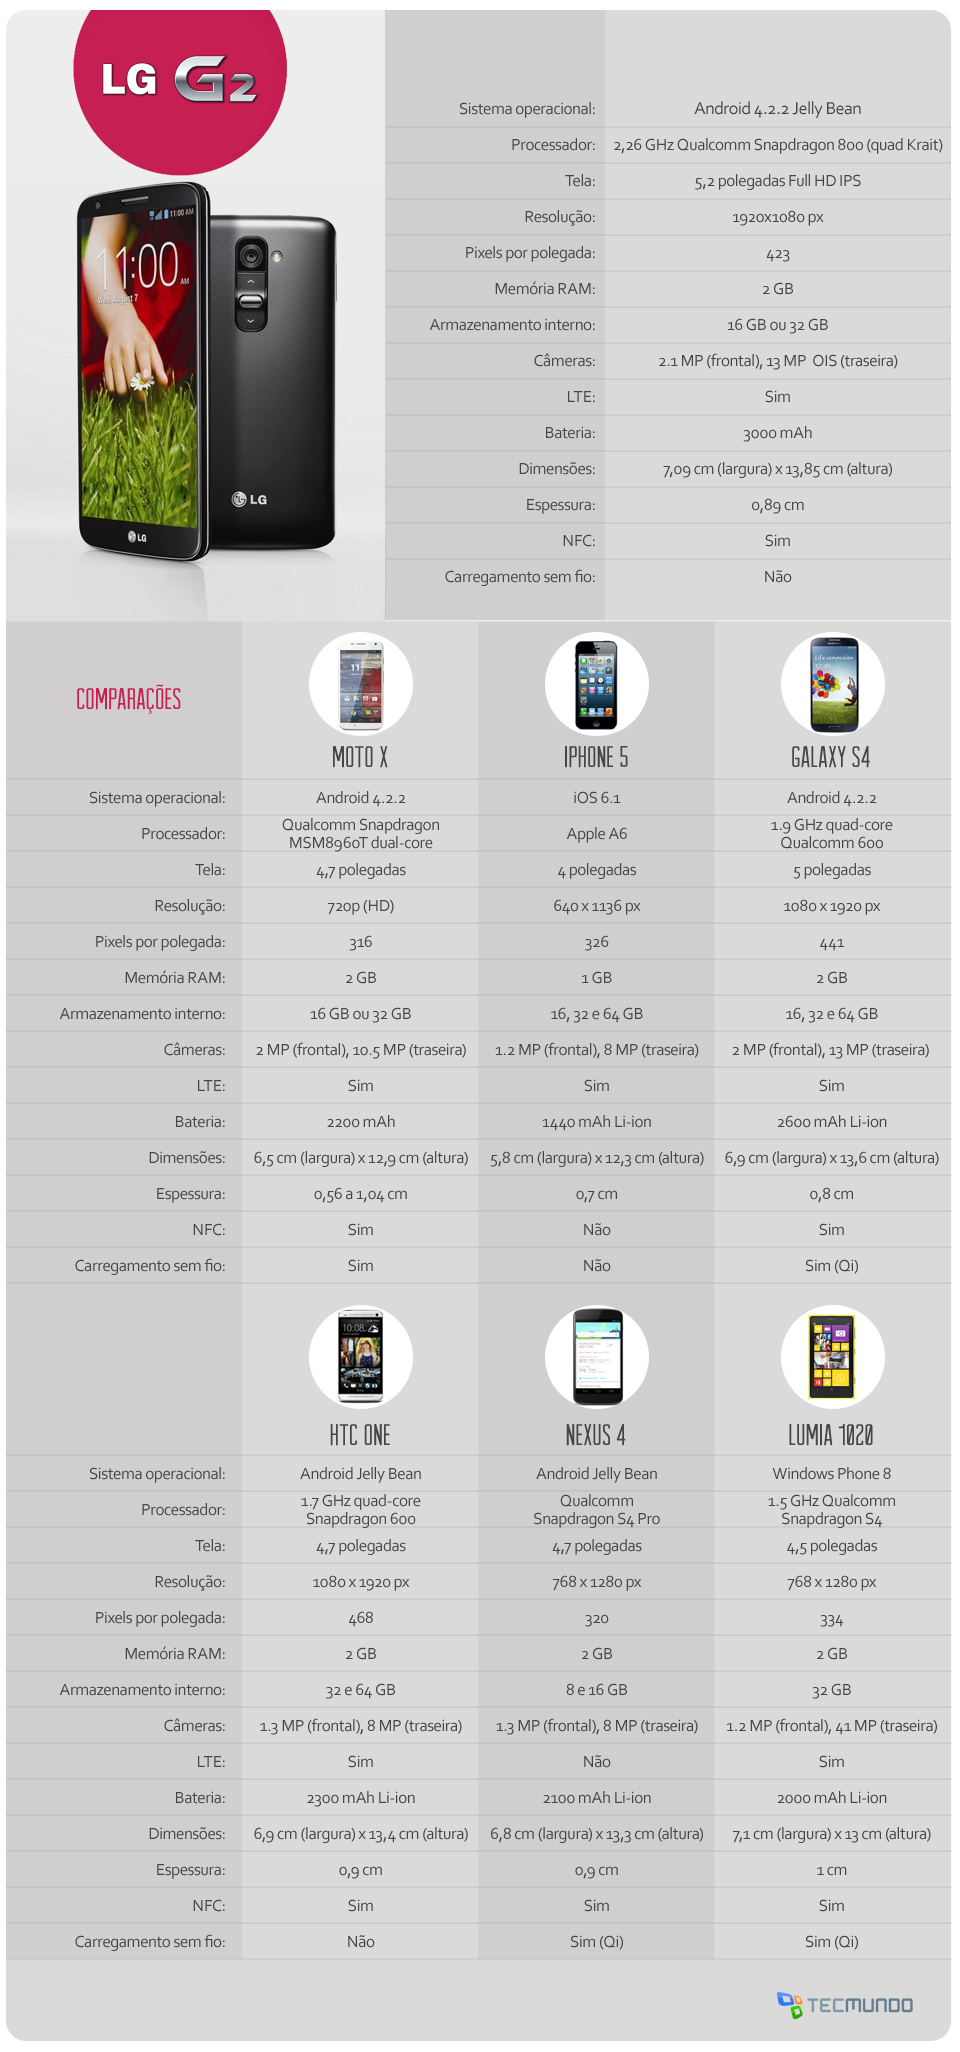 Comparativo: LG G2 x HTC One x Galaxy S4 x iPhone 5 x Moto X x Lumia 1020